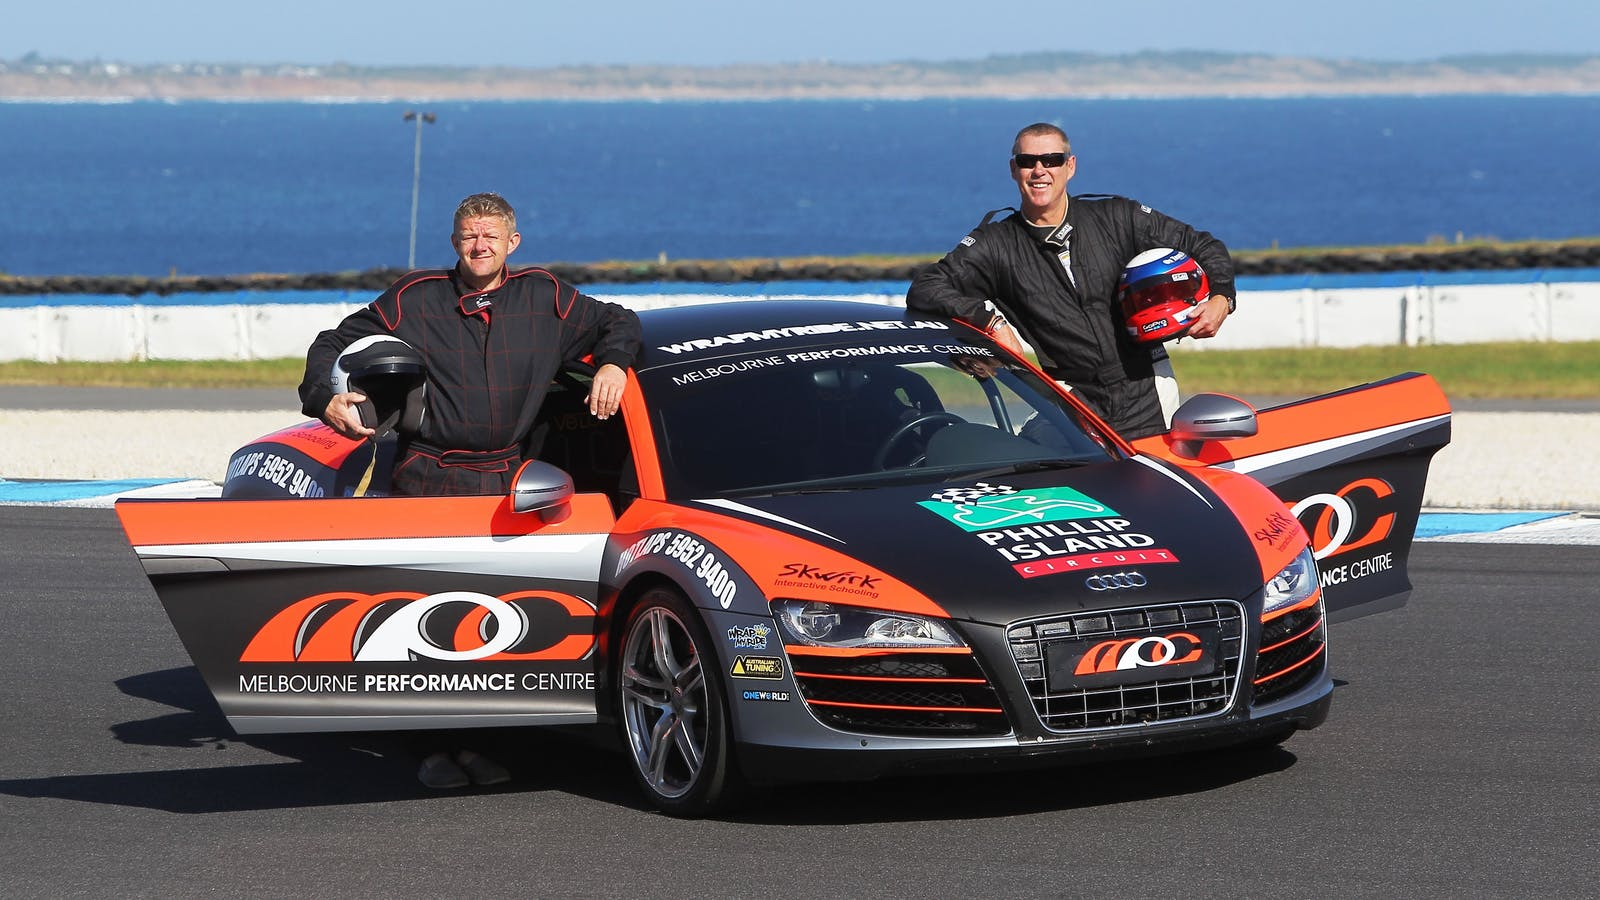 Audi Hot Lap Car